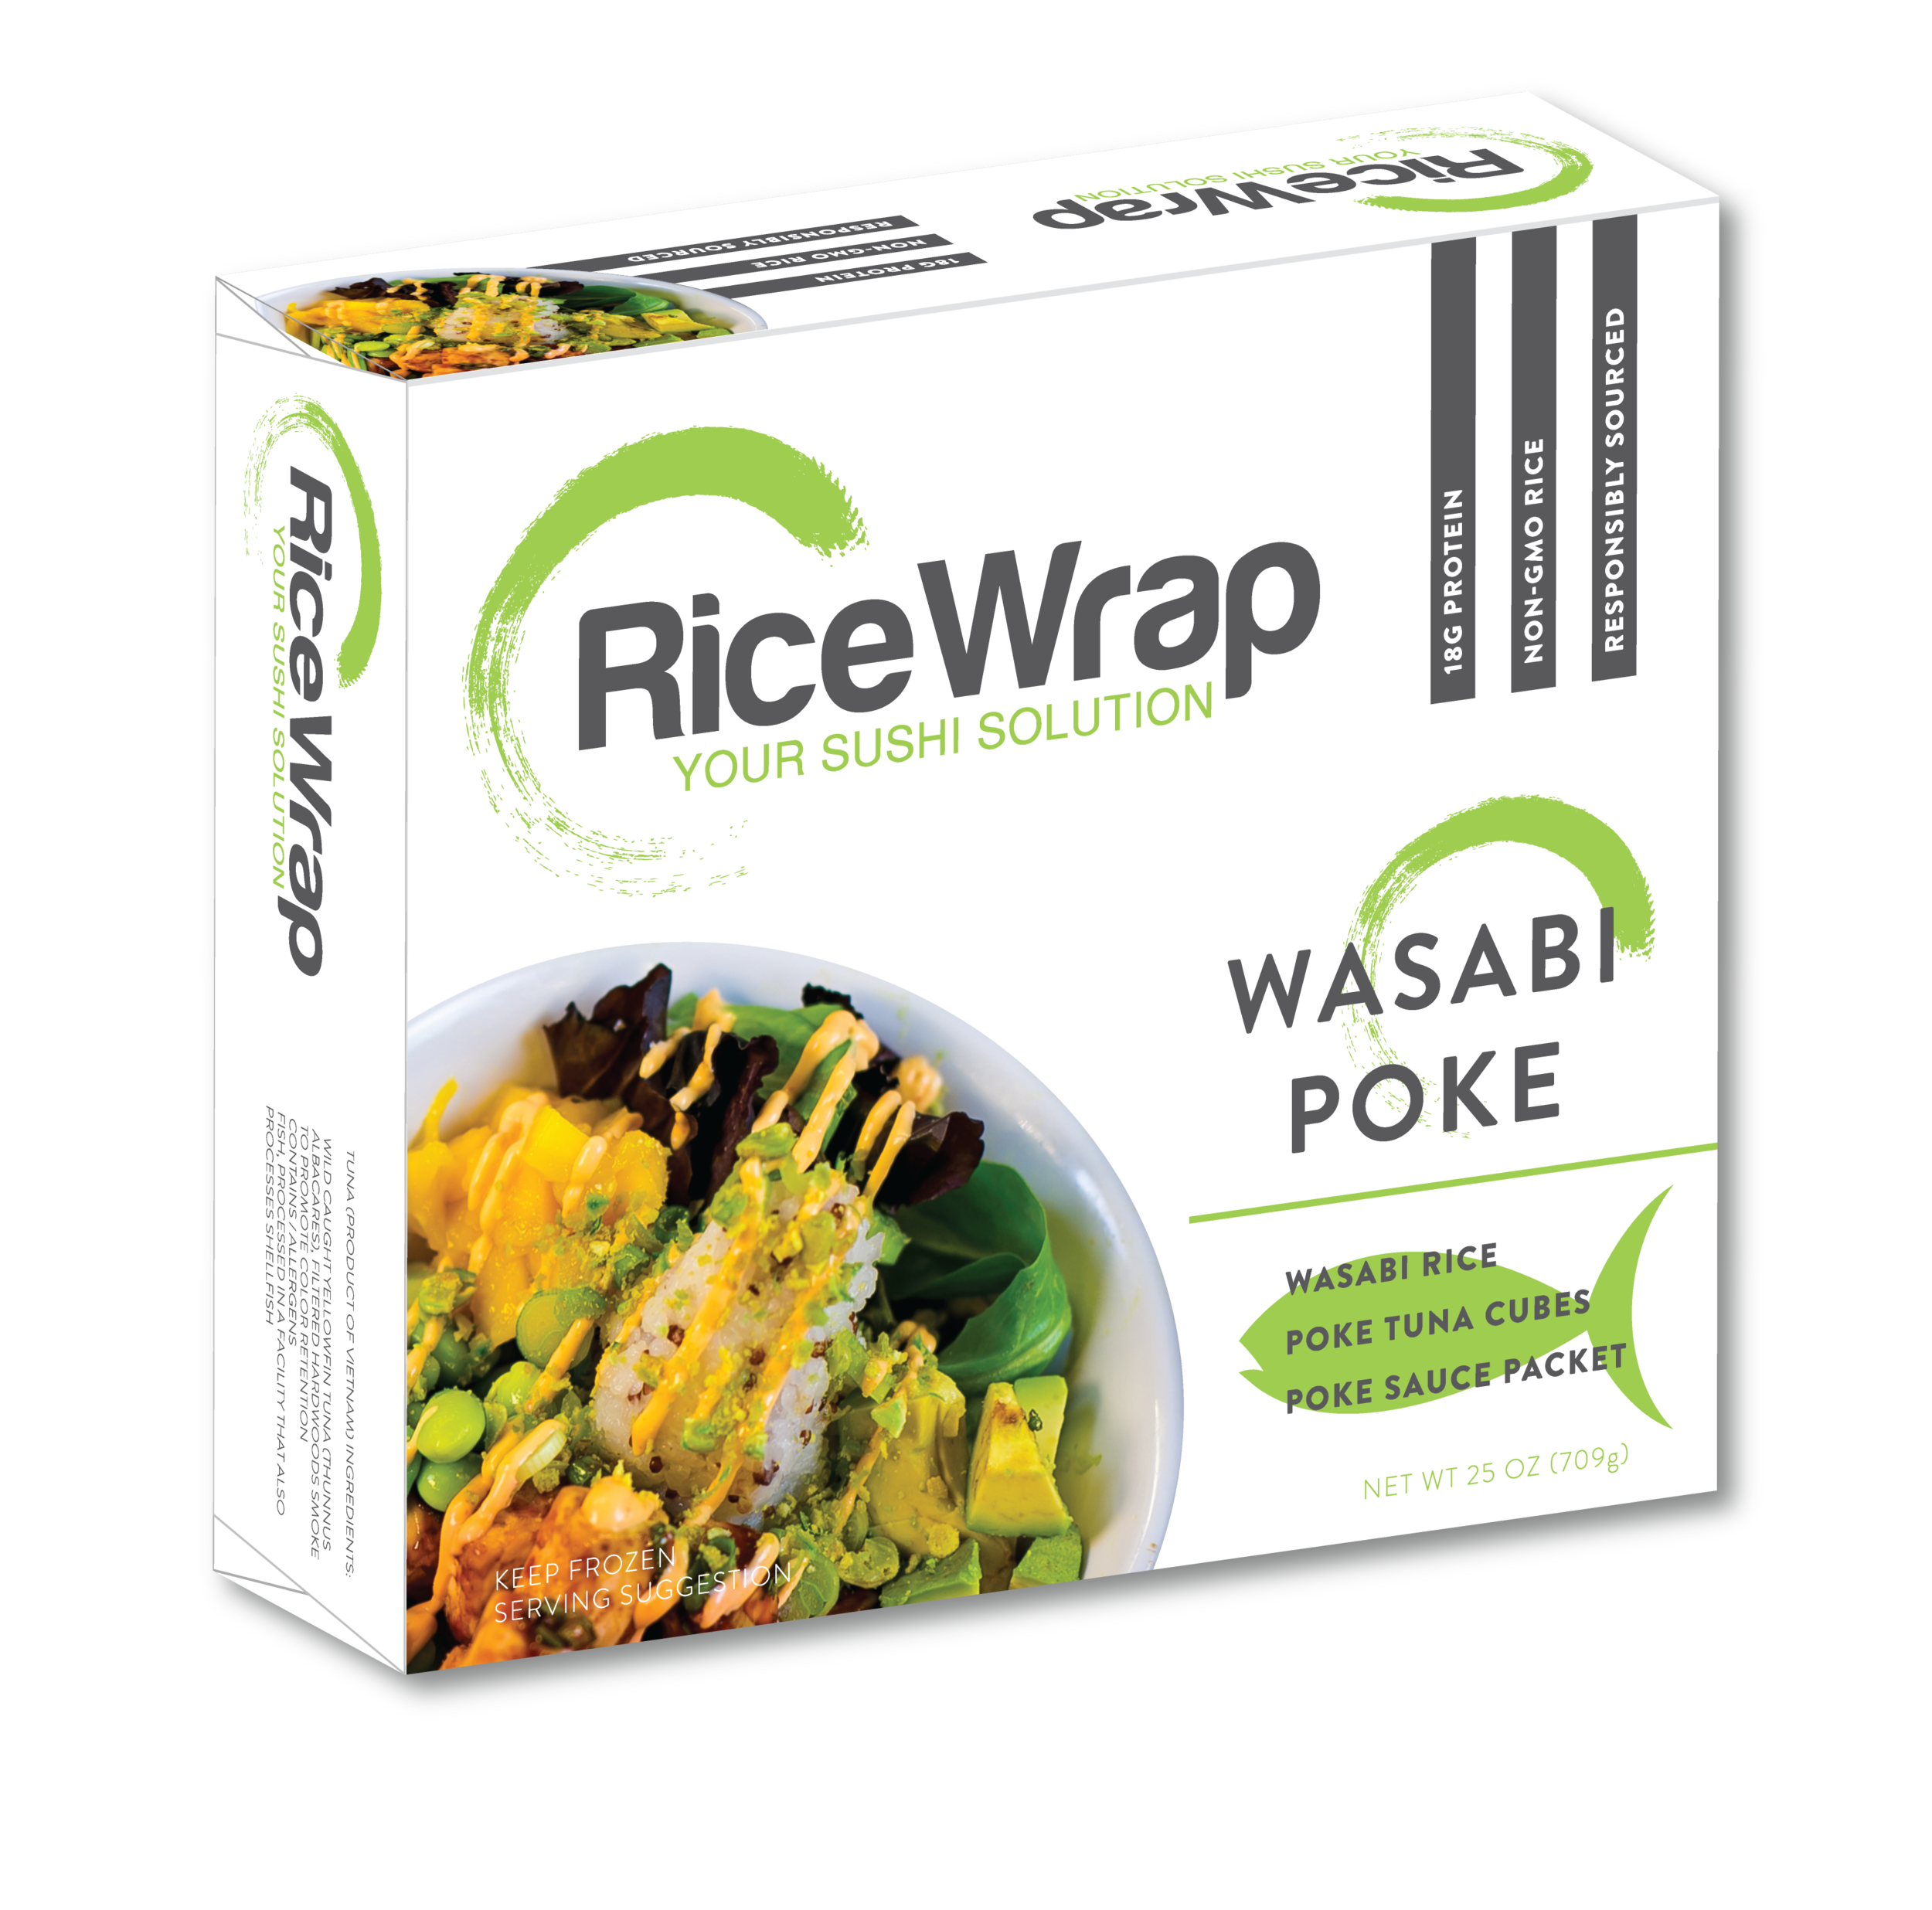 Rice Wrap Sushi Package Design by Kenzi Green Design